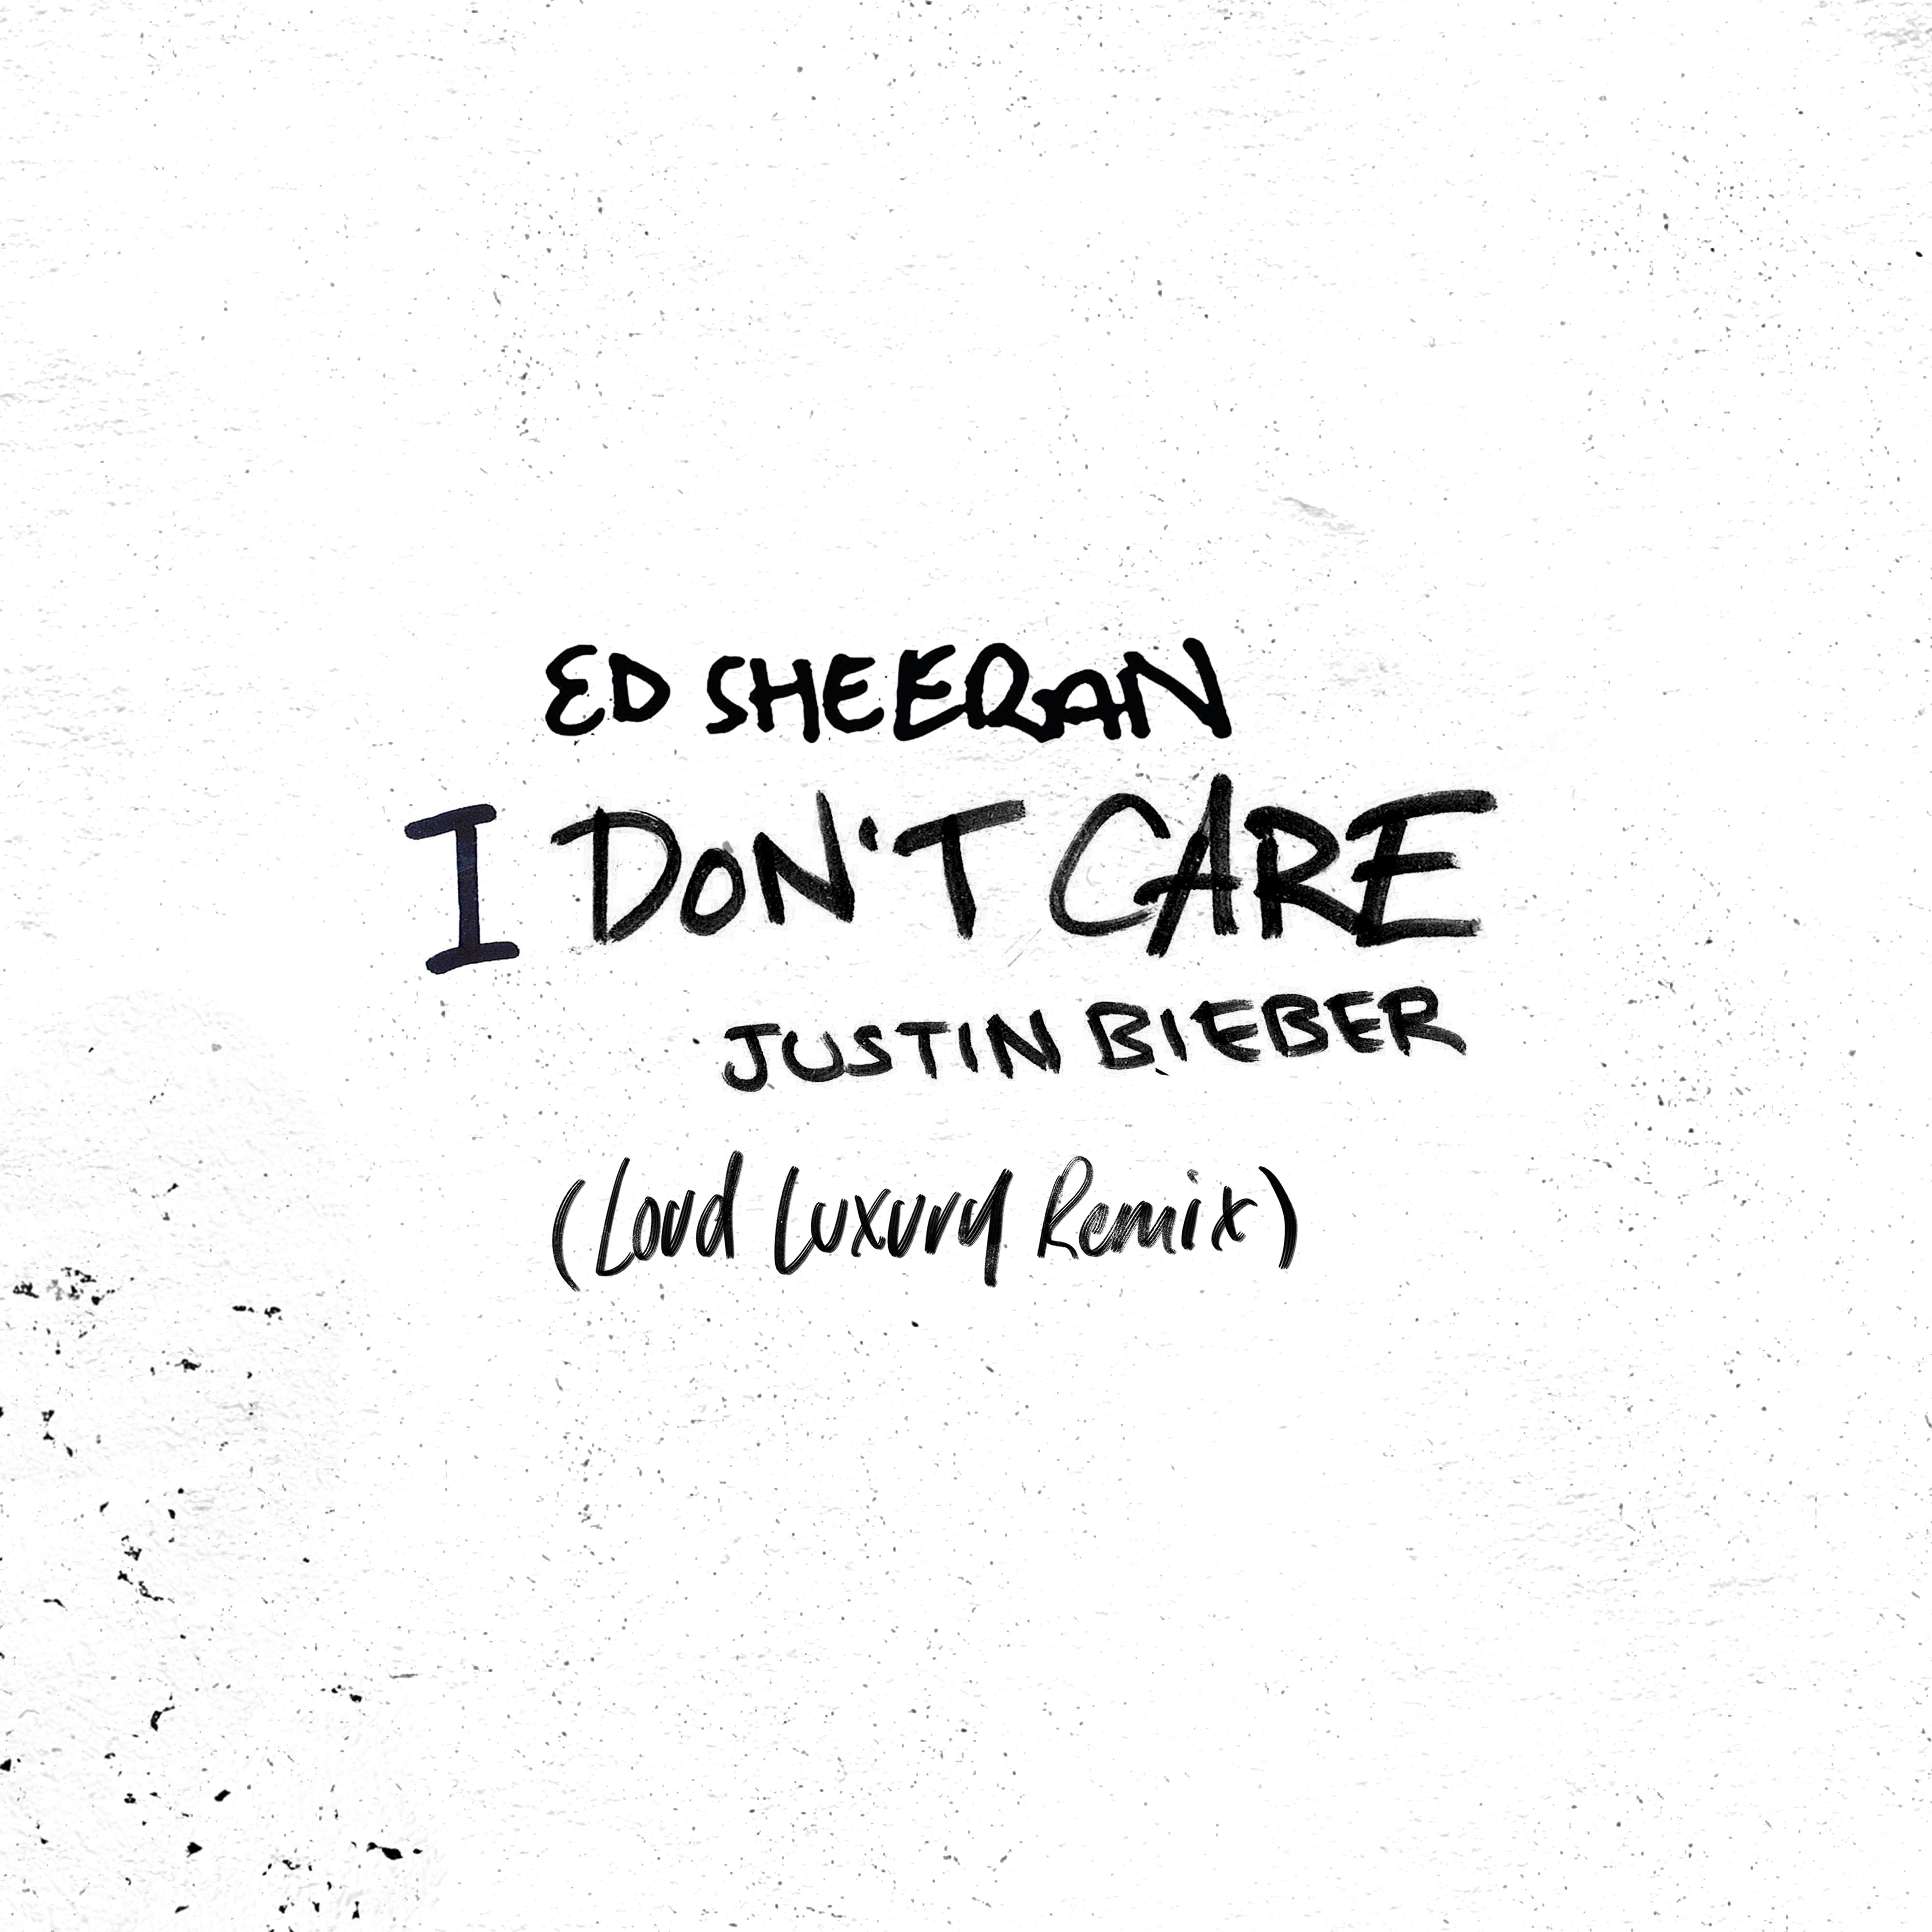 I Don't Care (Loud Luxury Remix)